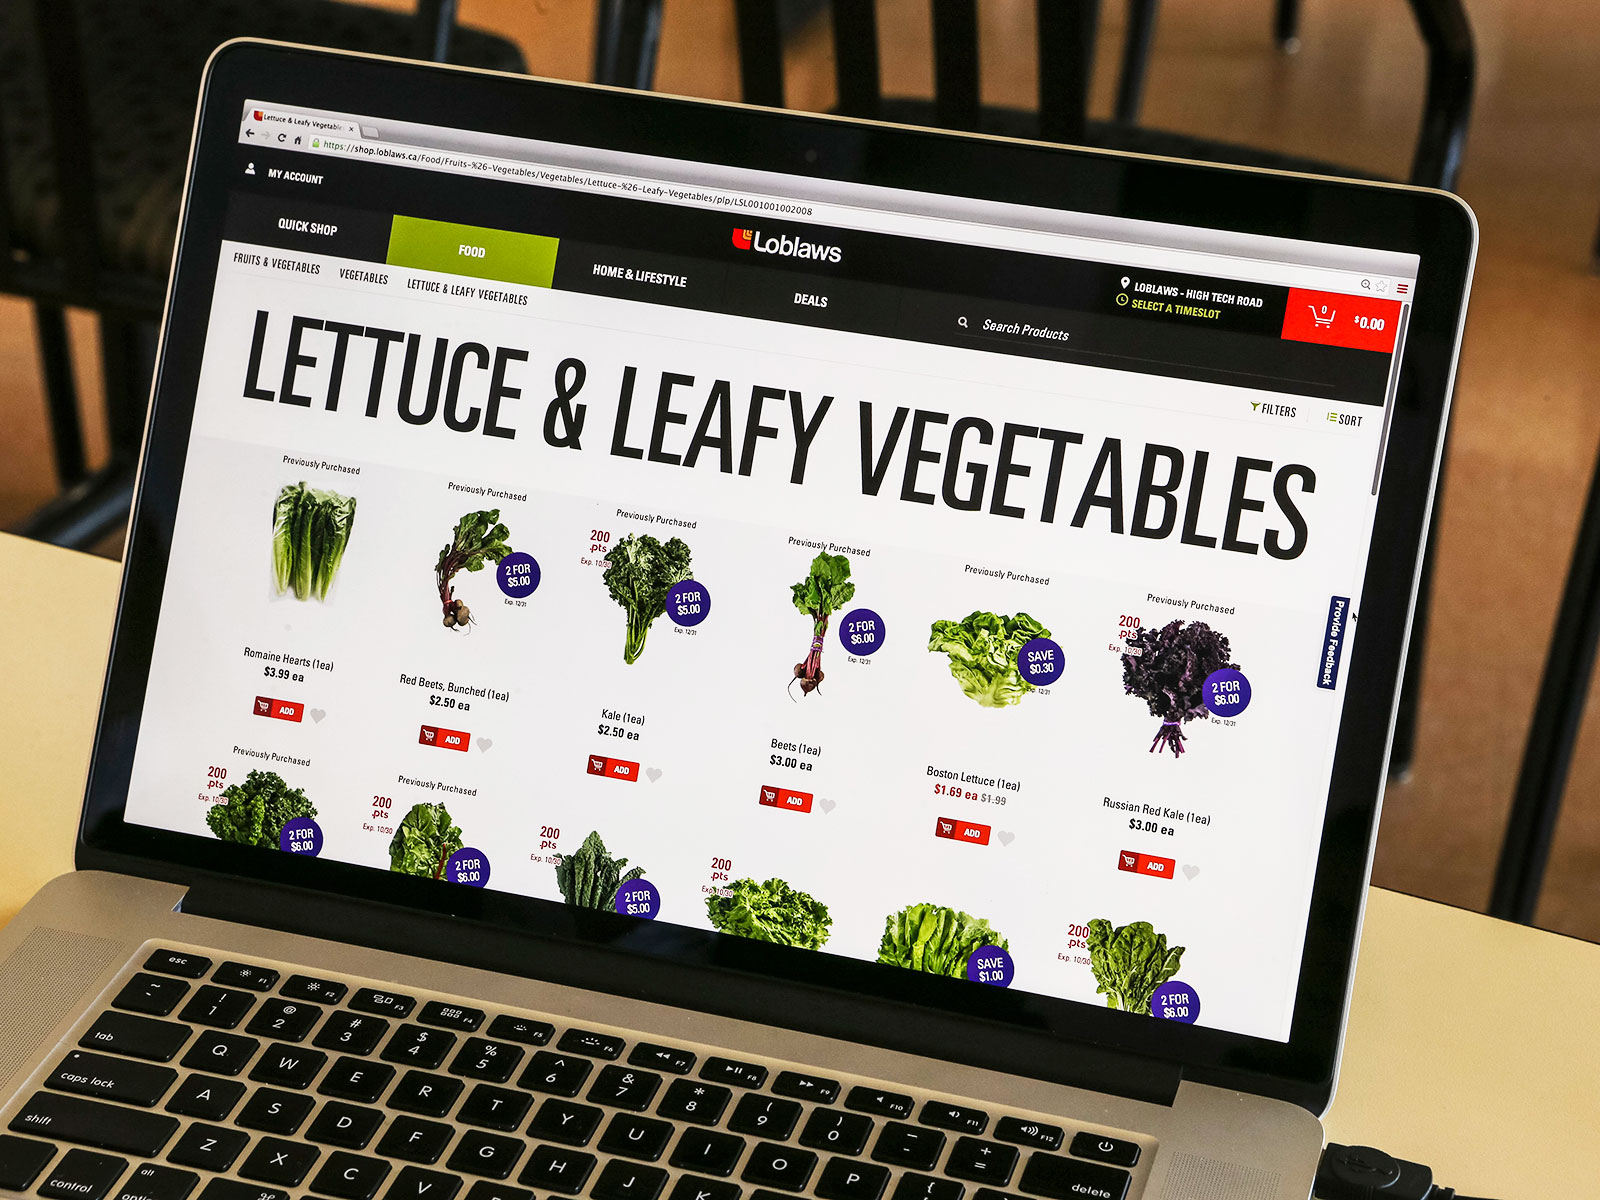 online grocery shopping can lead to healthy eating